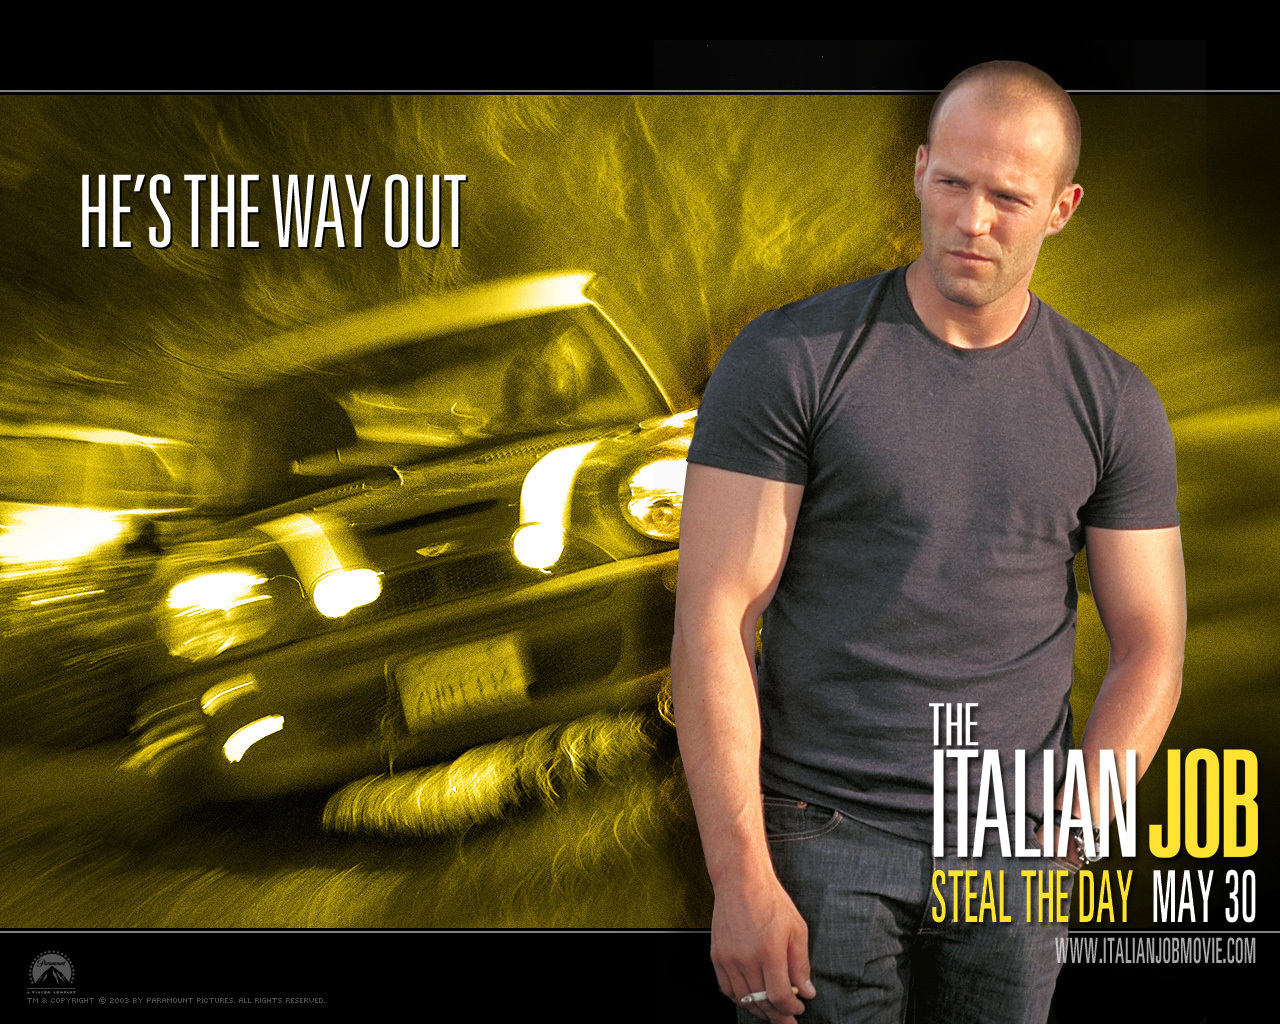 Action Films Images The Italian Job Hd Wallpaper And Background